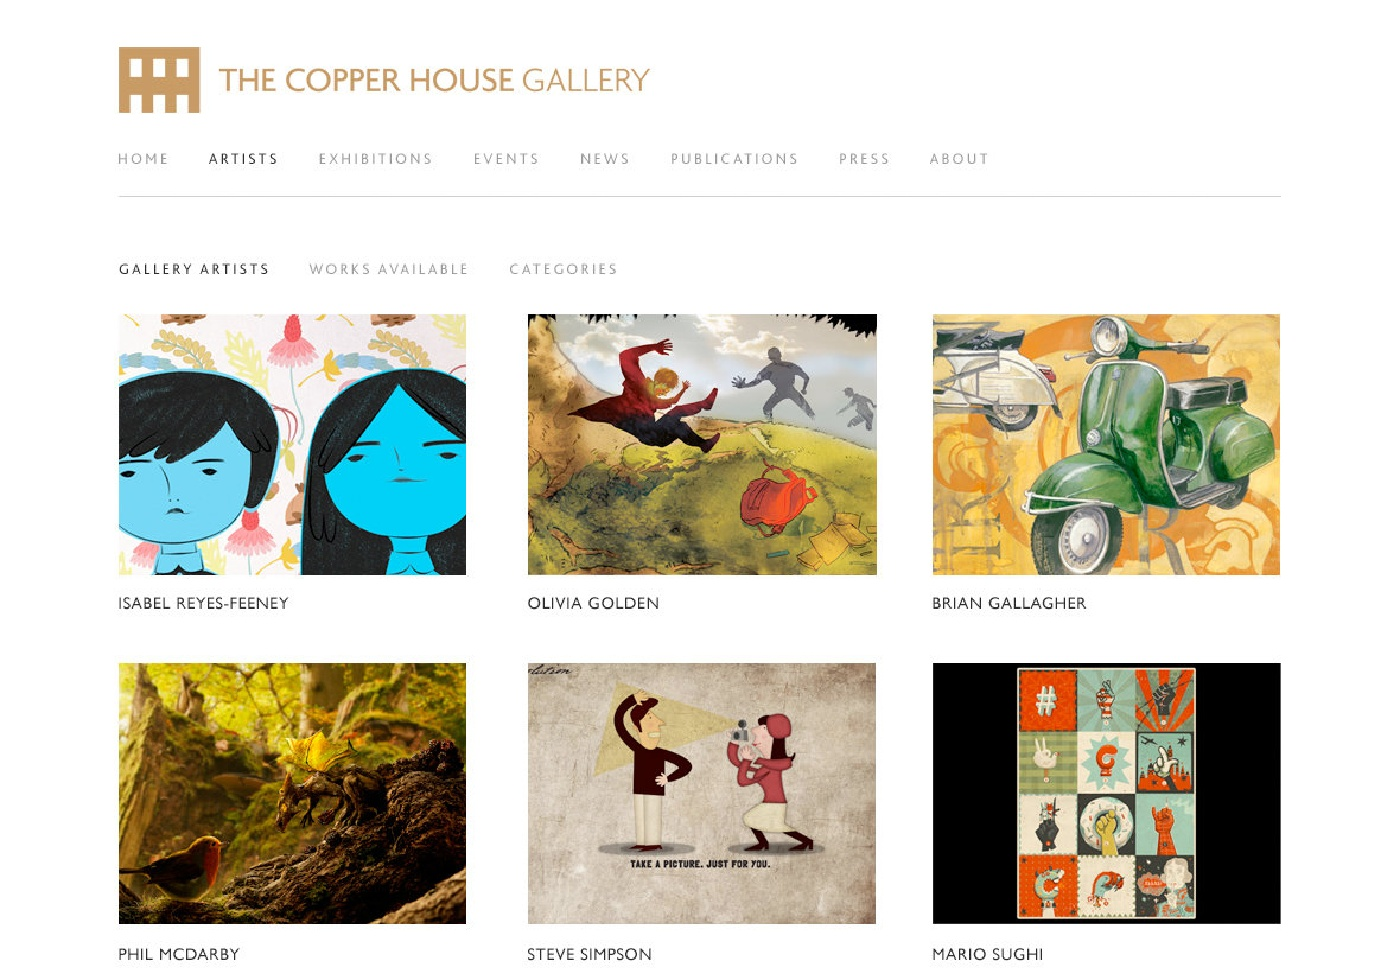 The Copper House Gallery